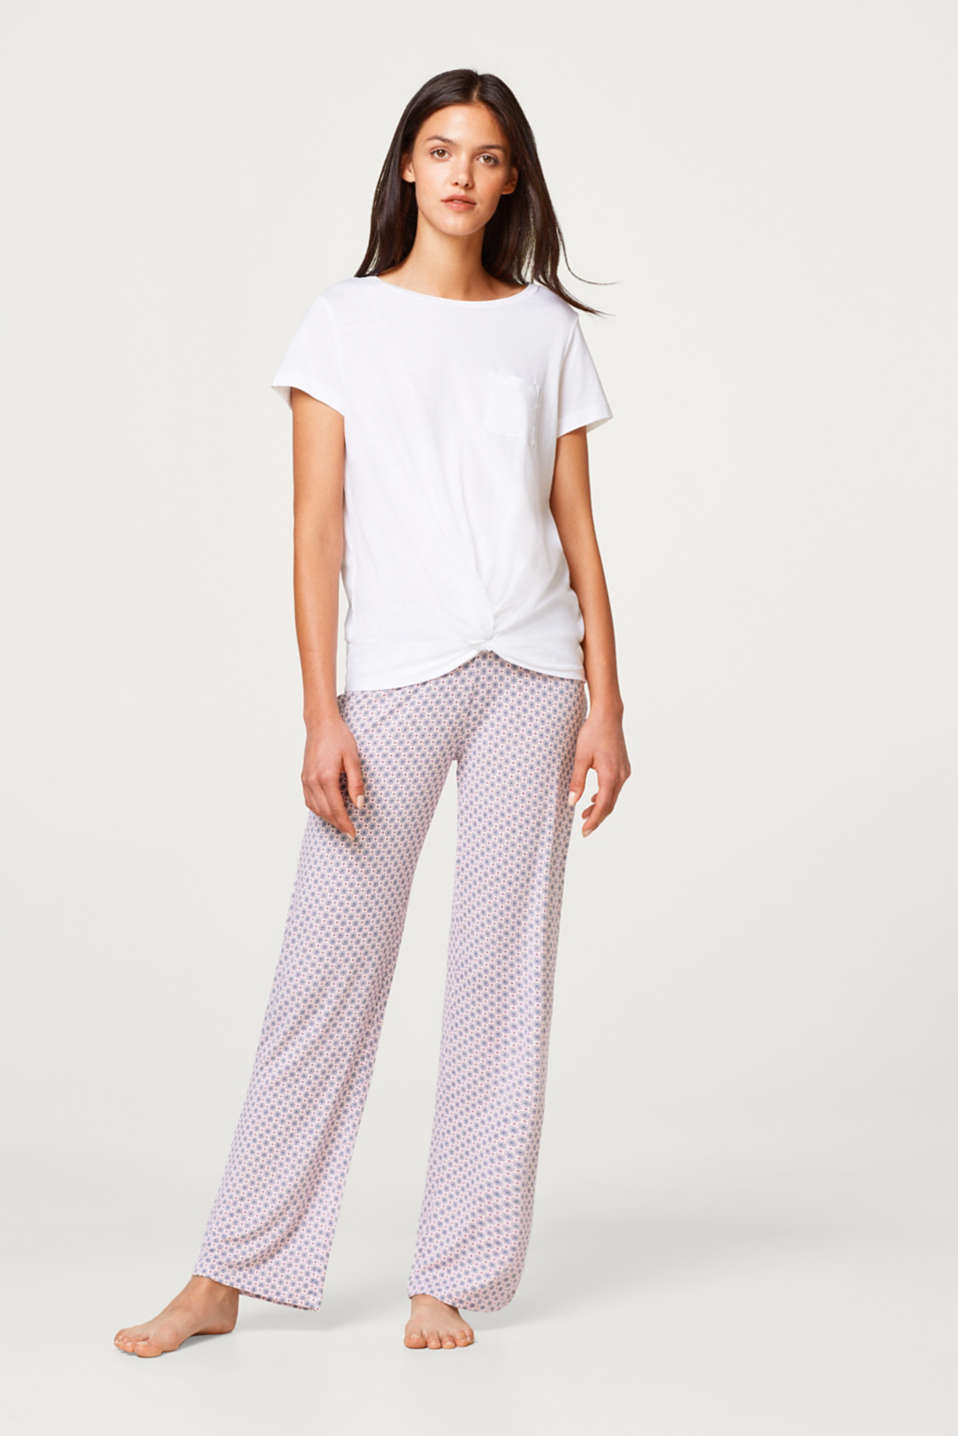 Esprit - Stretch jersey trousers with an ornament print